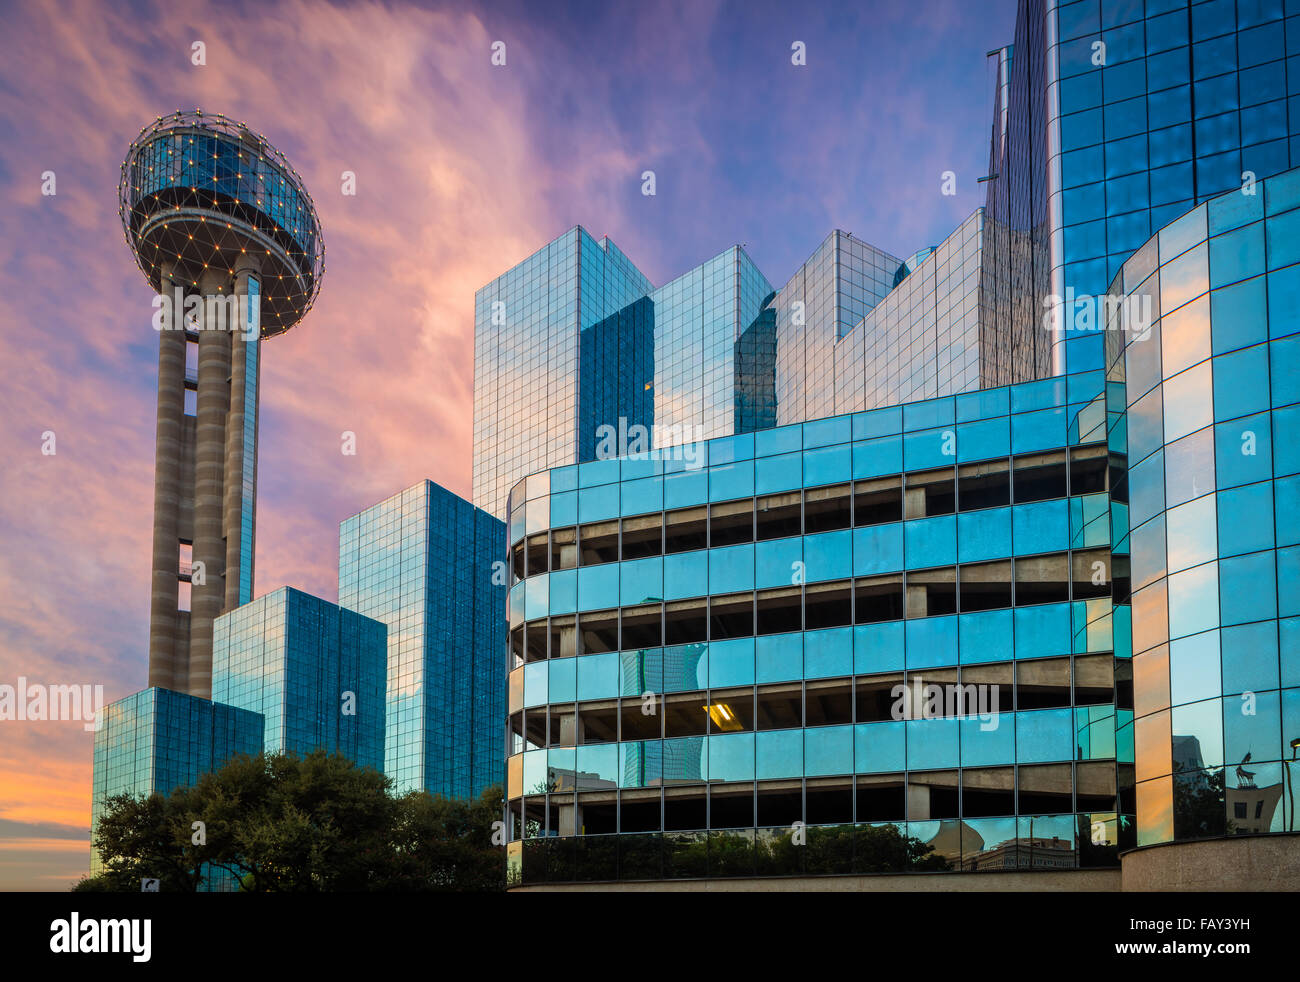 Reunion Tower is a 561 ft (171 m) observation tower and one of the most recognizable landmarks in Dallas, Texas - Stock Image